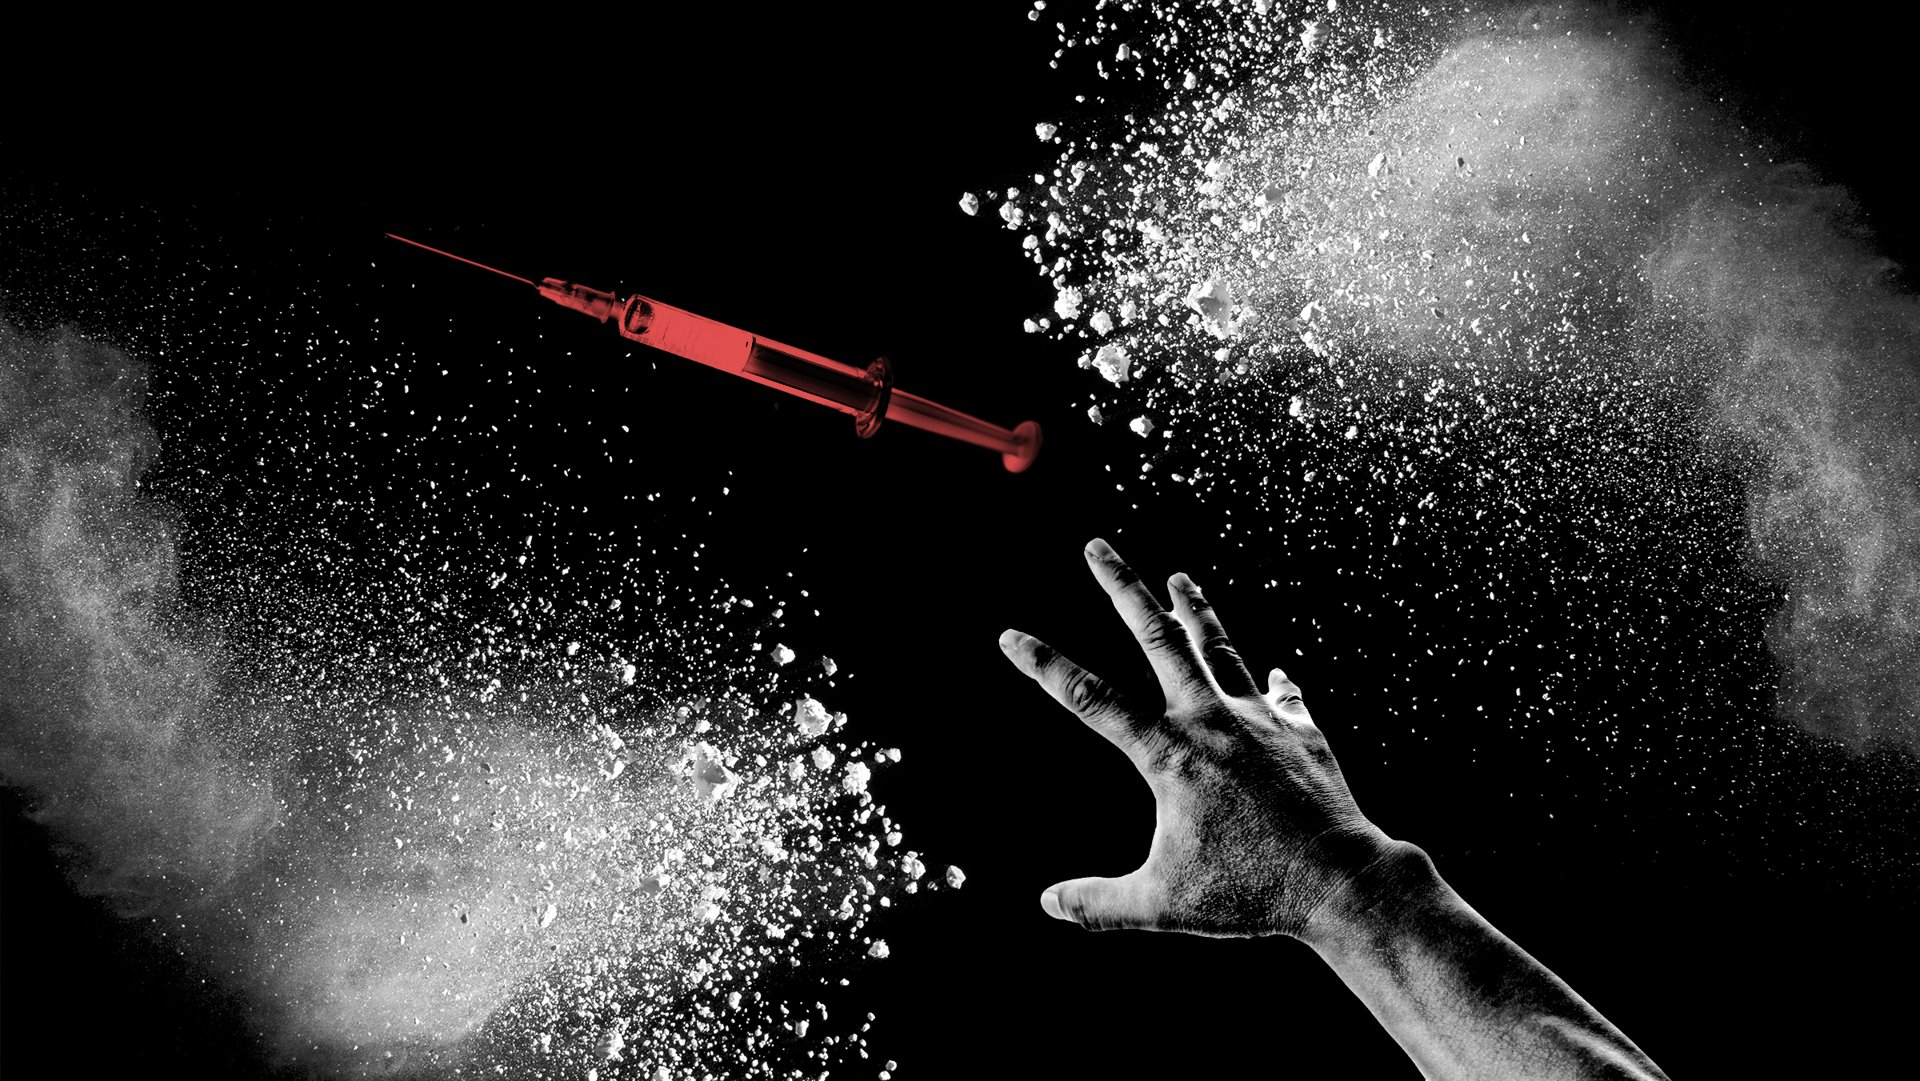 A hand reaching for a needle among white powder